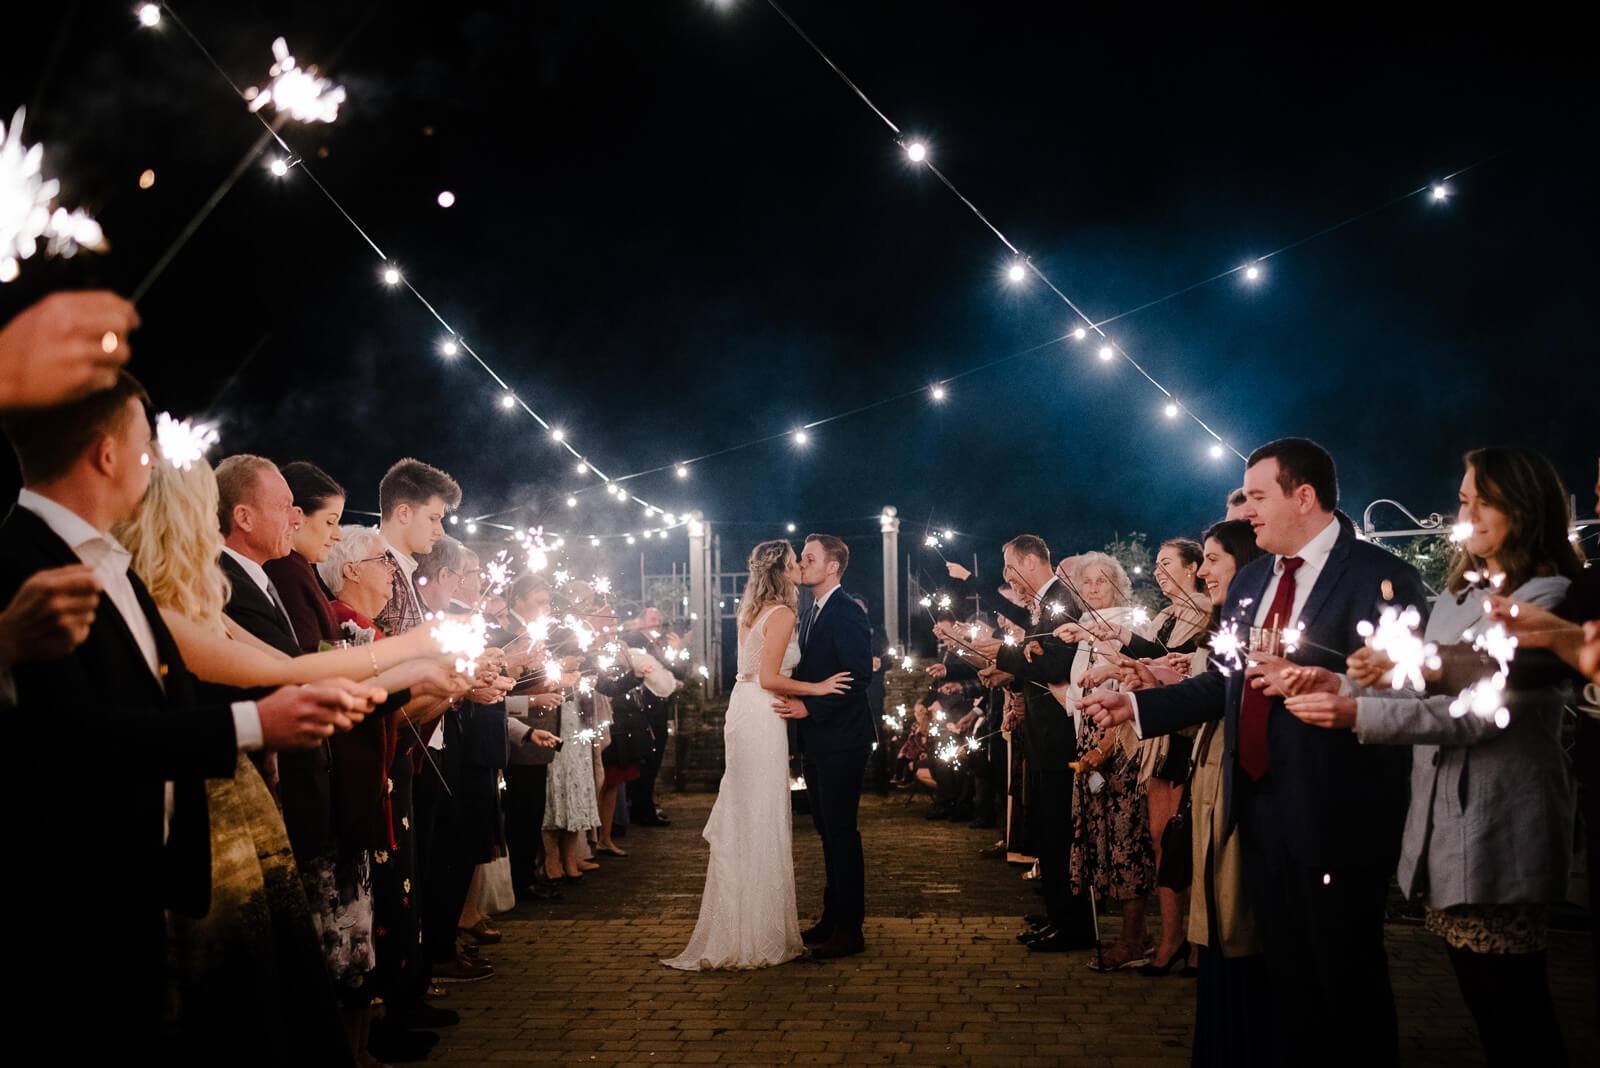 Wiltshire bride and groom kiss under festoon lights during sparklers